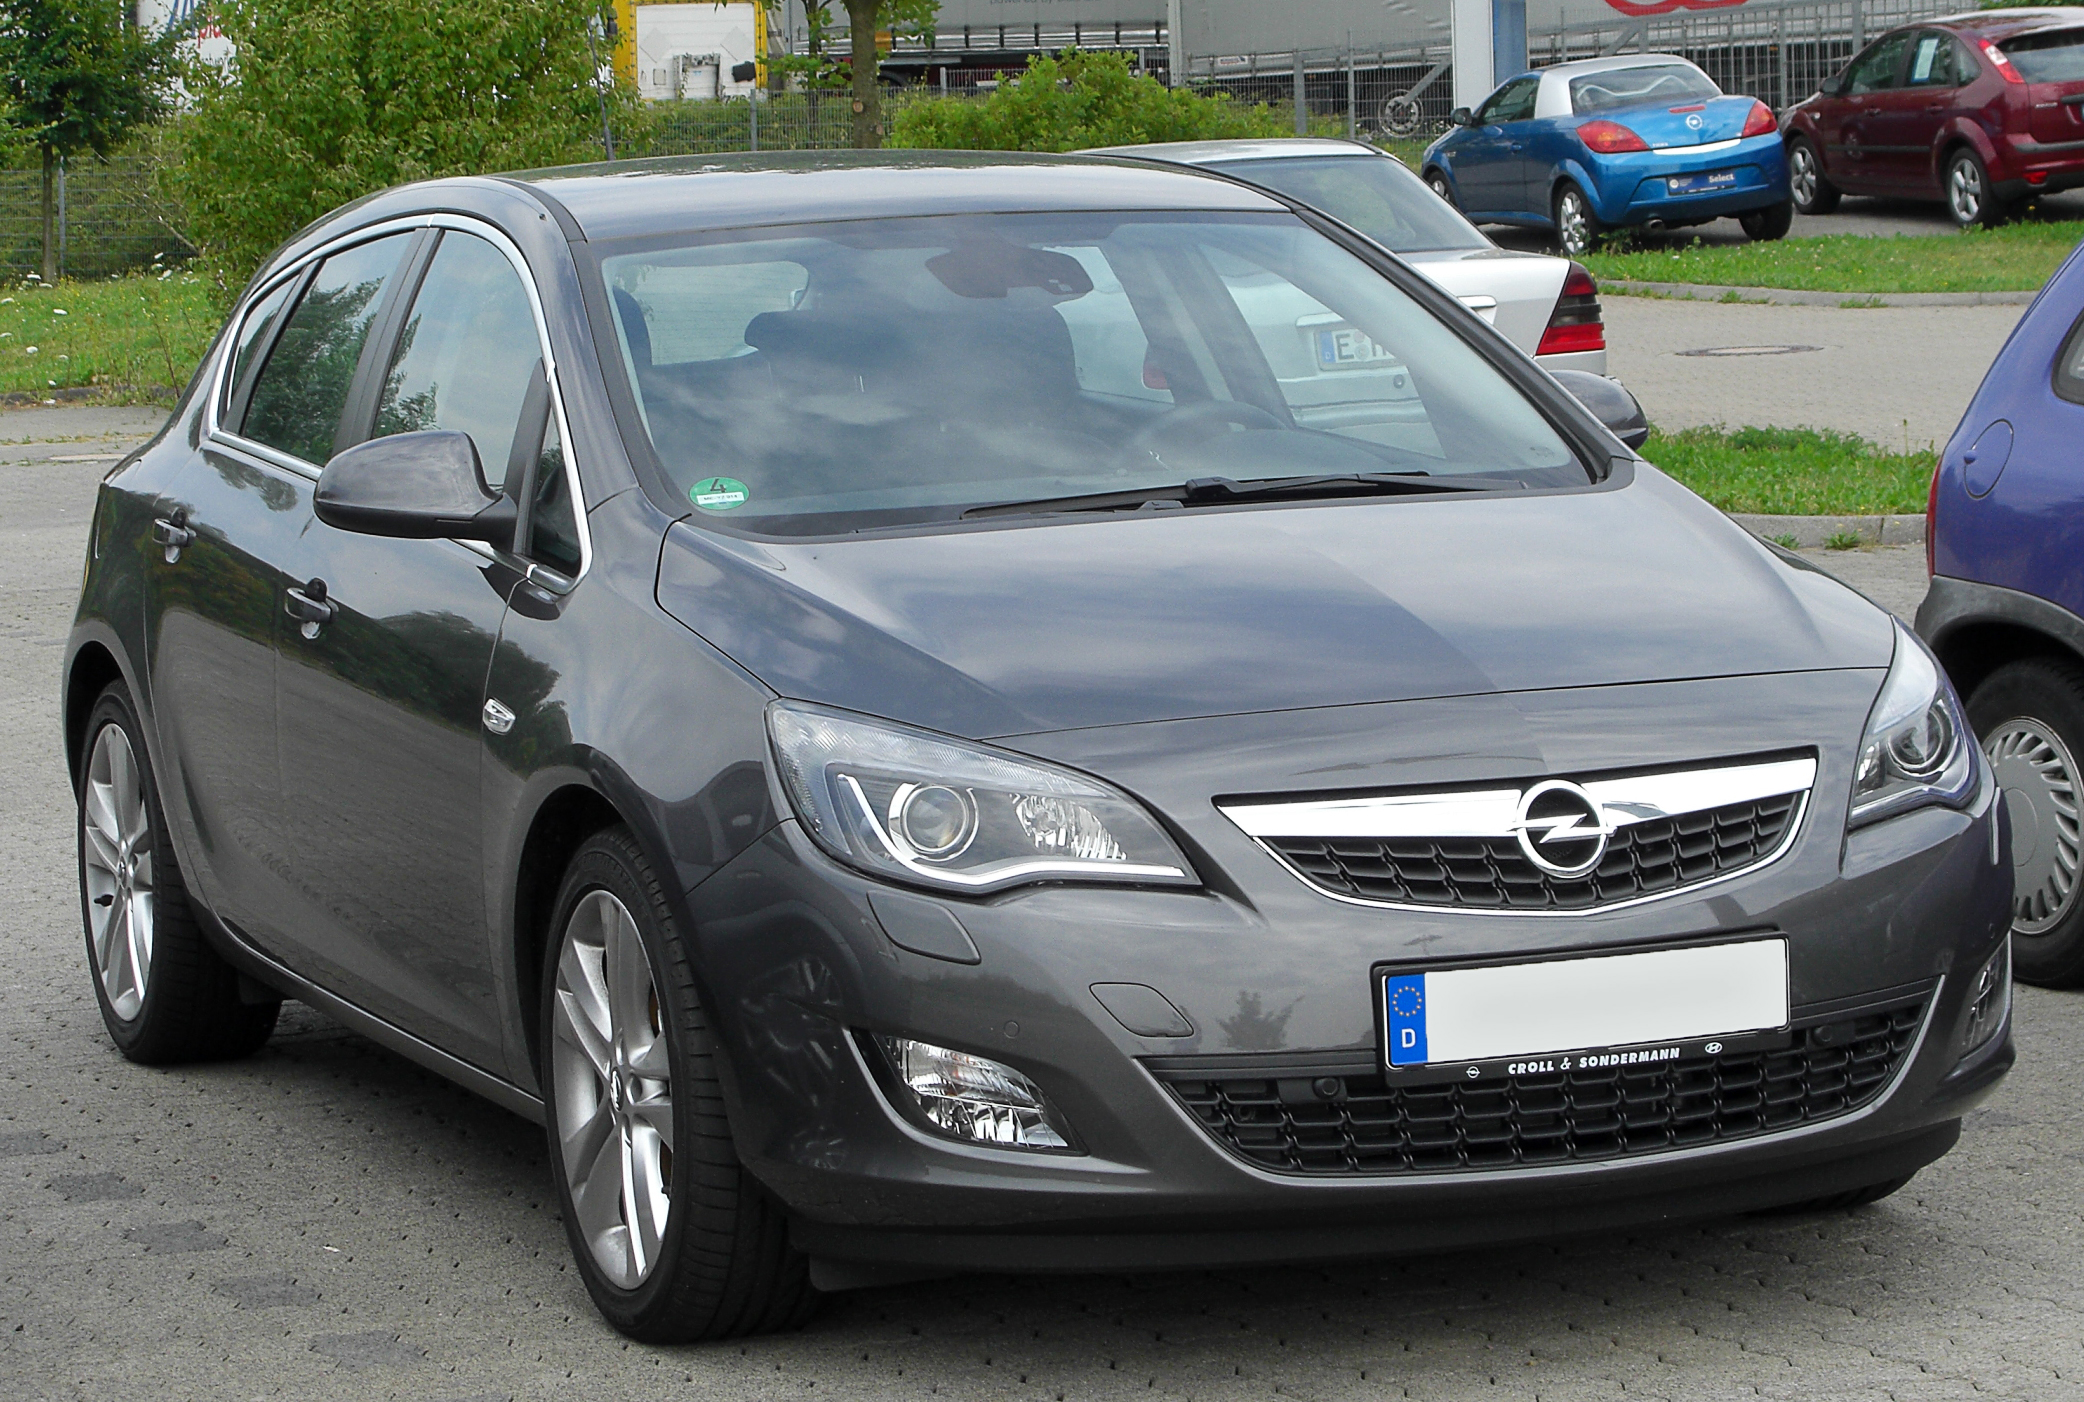 File:Opel Astra J front 20100725.jpg - Wikimedia Commons: https://commons.wikimedia.org/wiki/File:Opel_Astra_J_front_20100725...